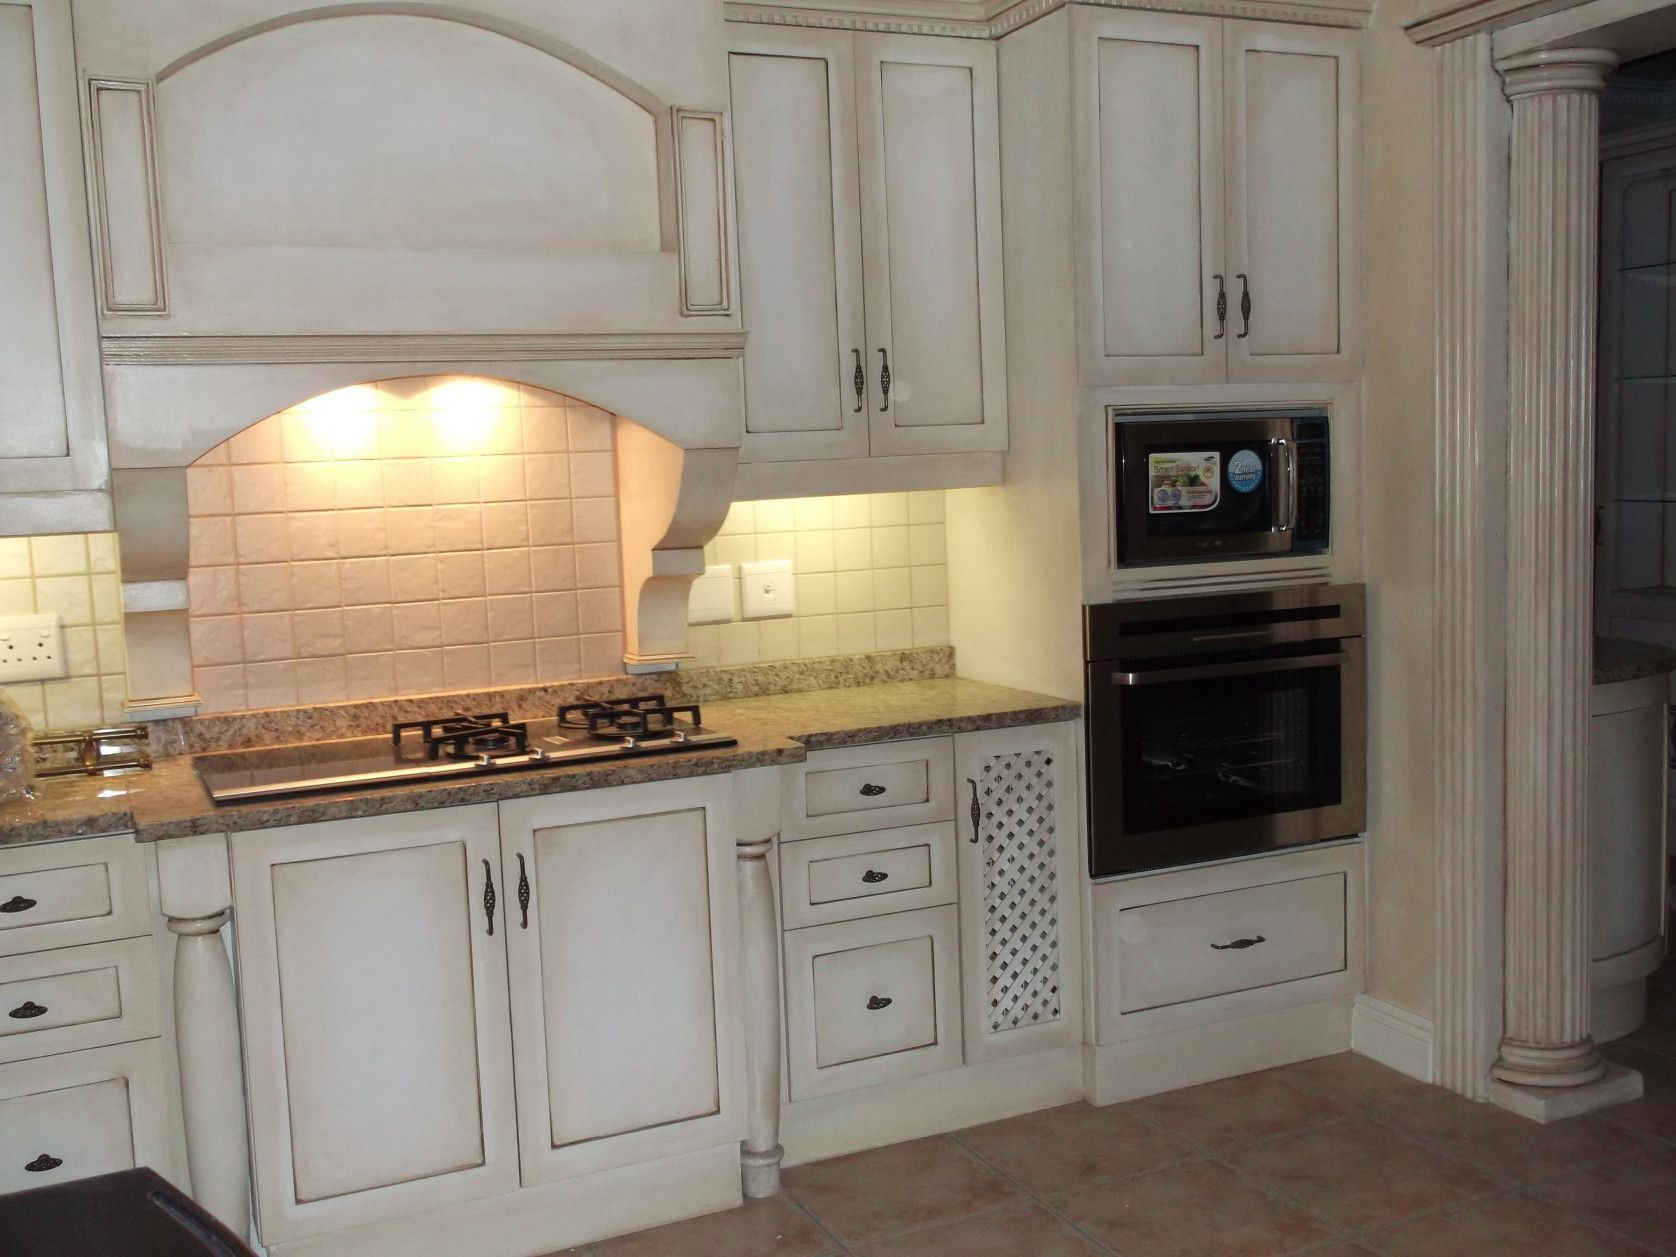 99 Shabby Chic Painted Kitchen Cabinets Small Kitchen Island